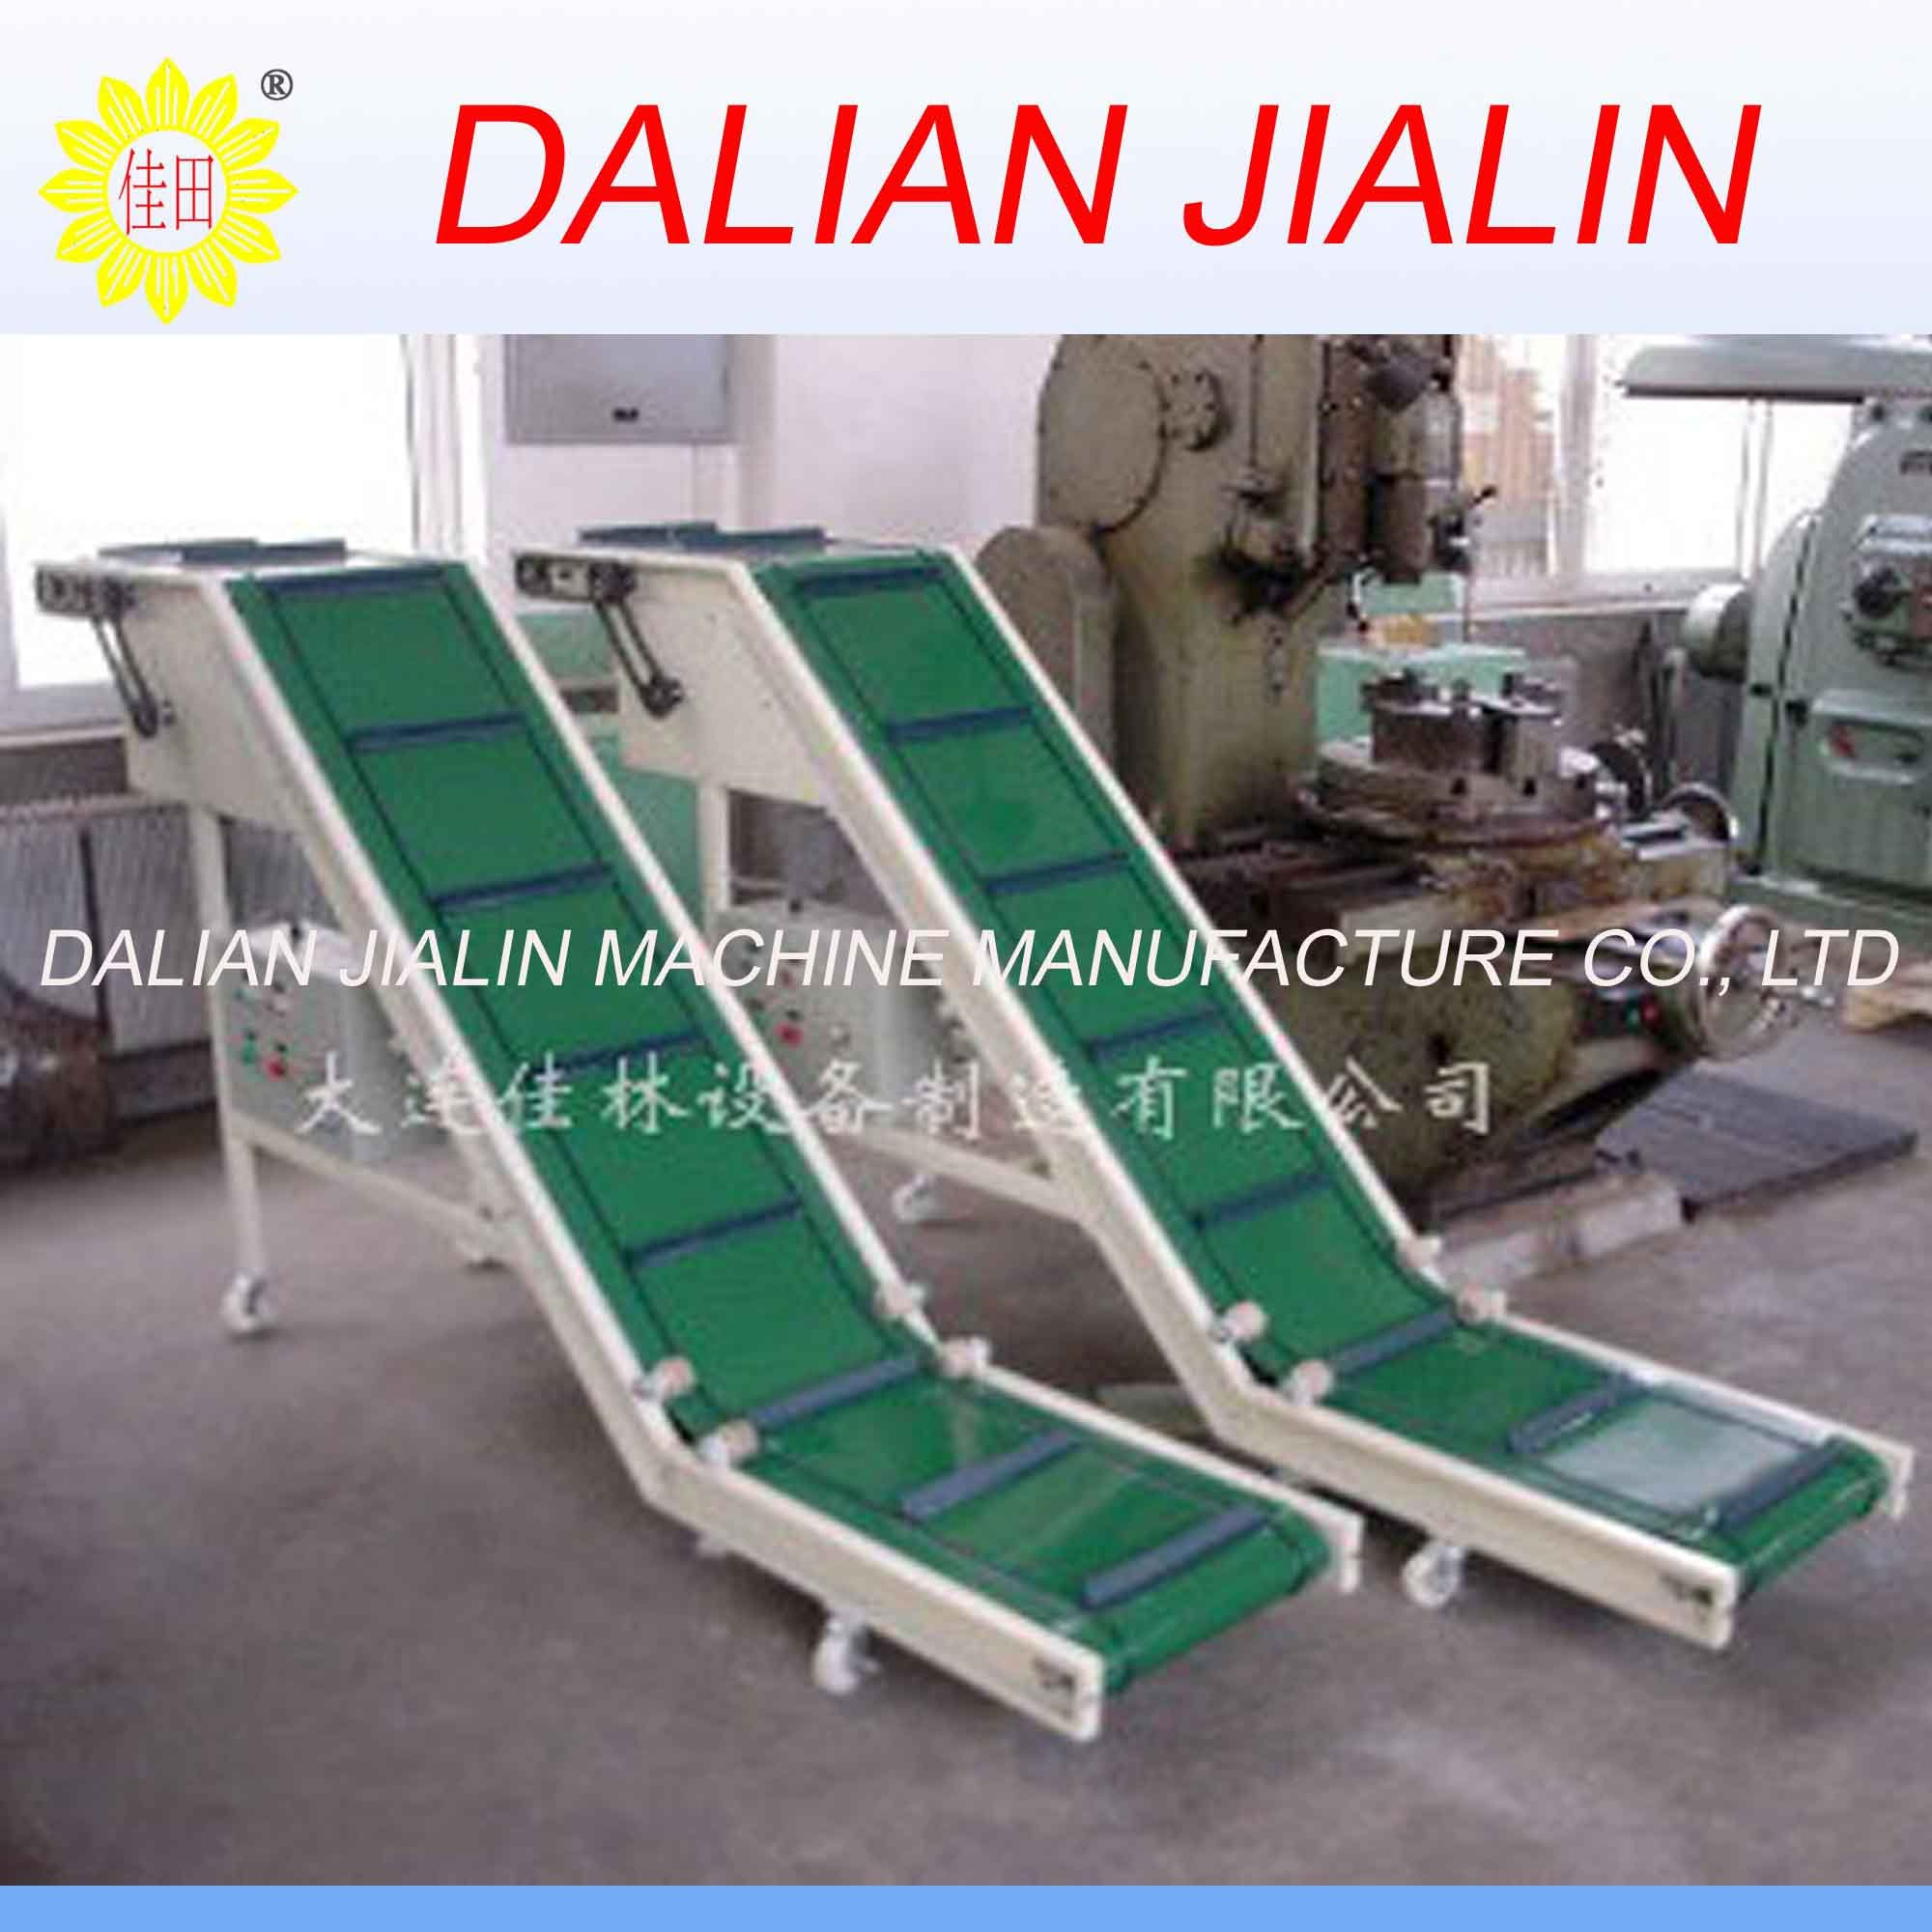 Small rubber belt conveyor system